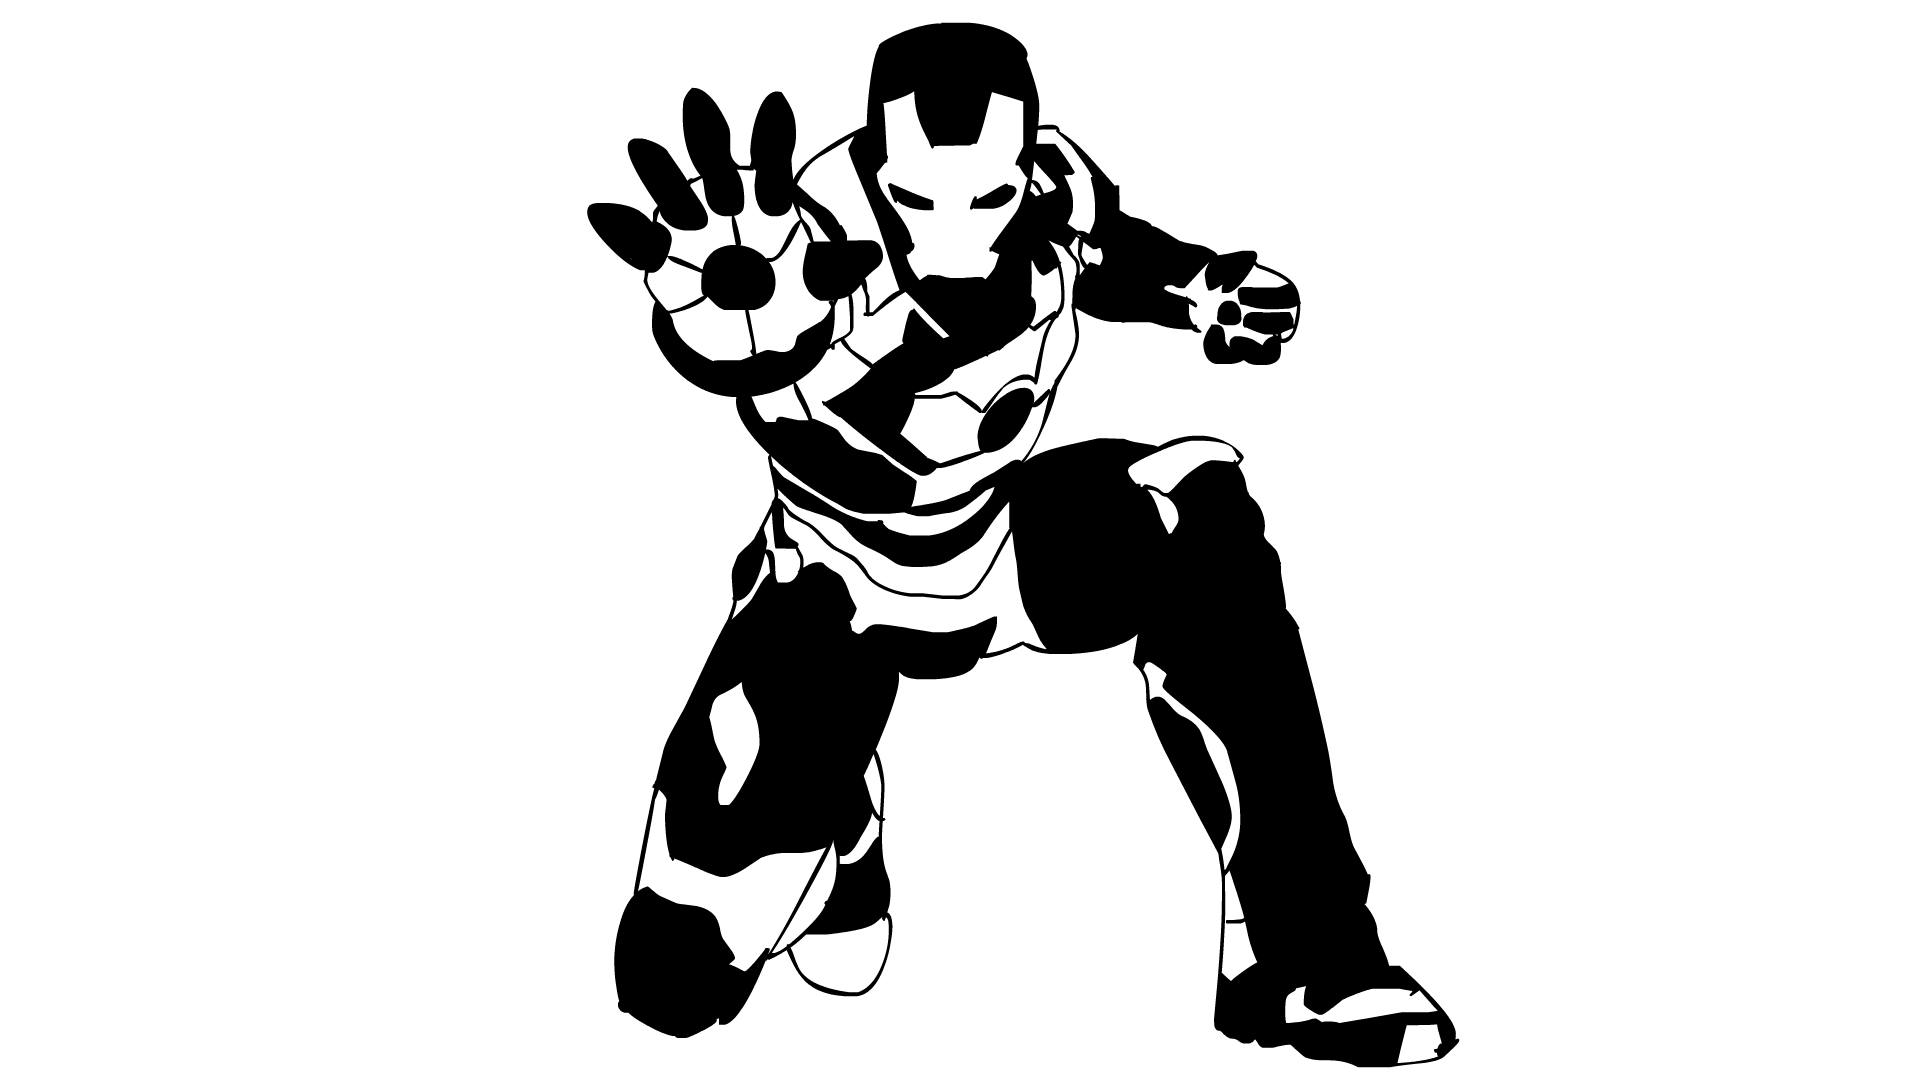 Black and white ironman